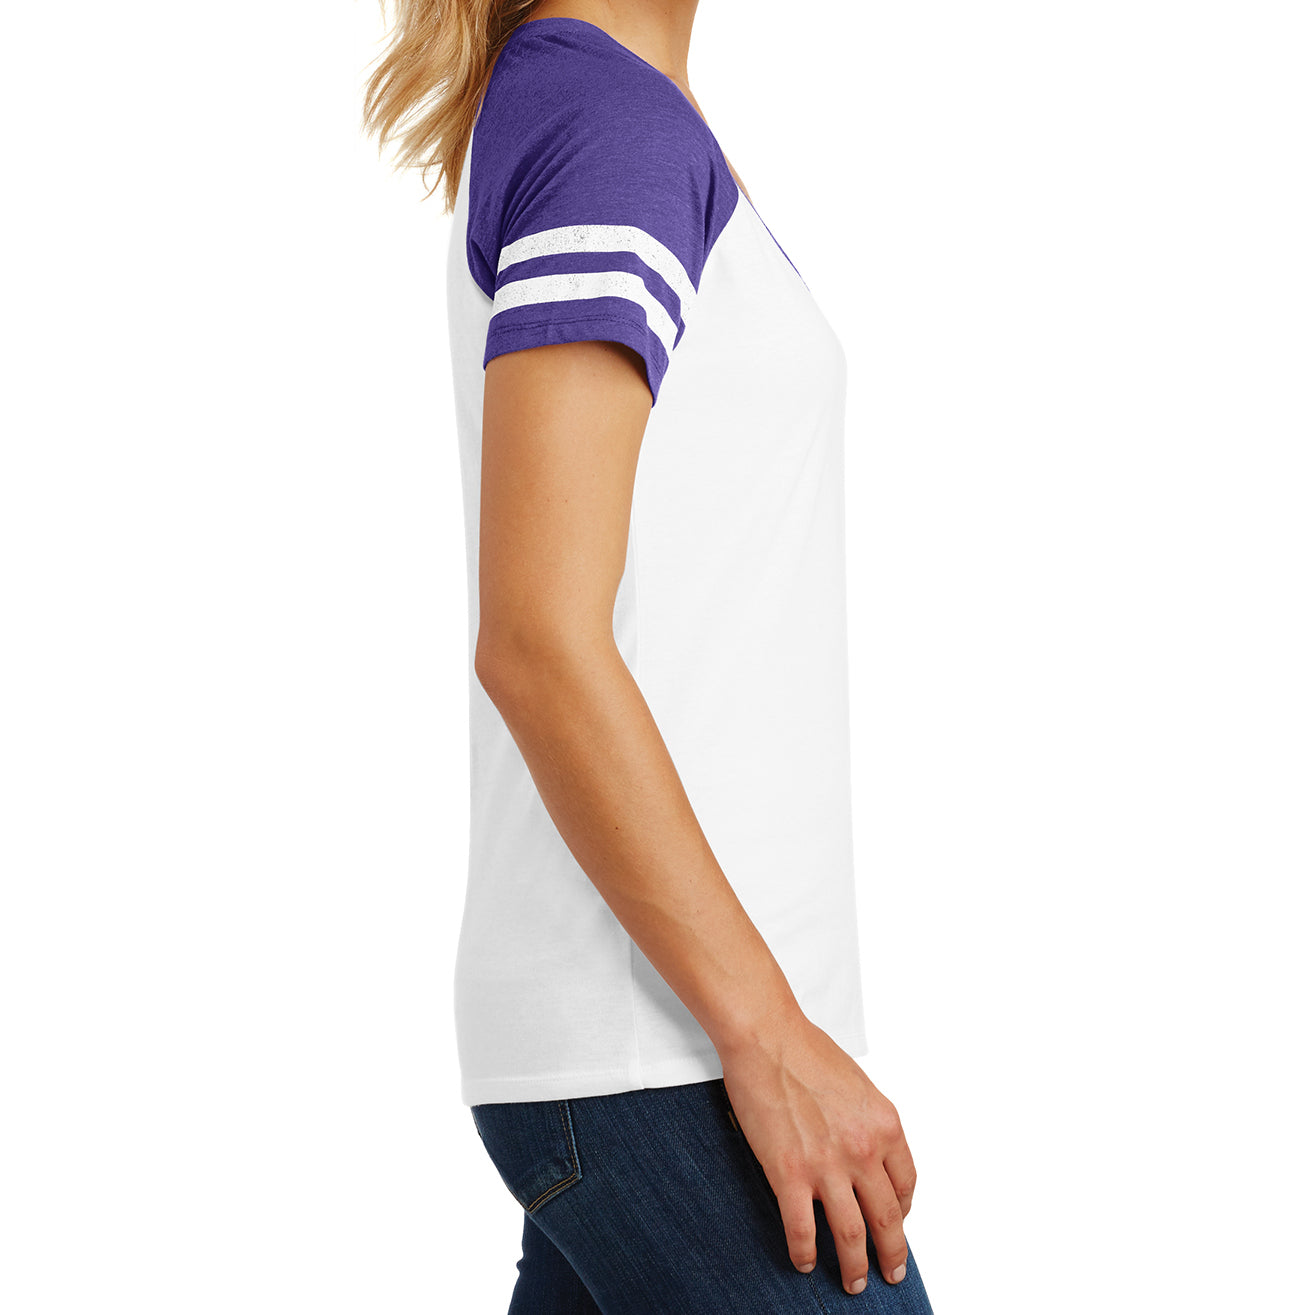 Womens Game V-Neck Tee - White/Heathered Purple - Side